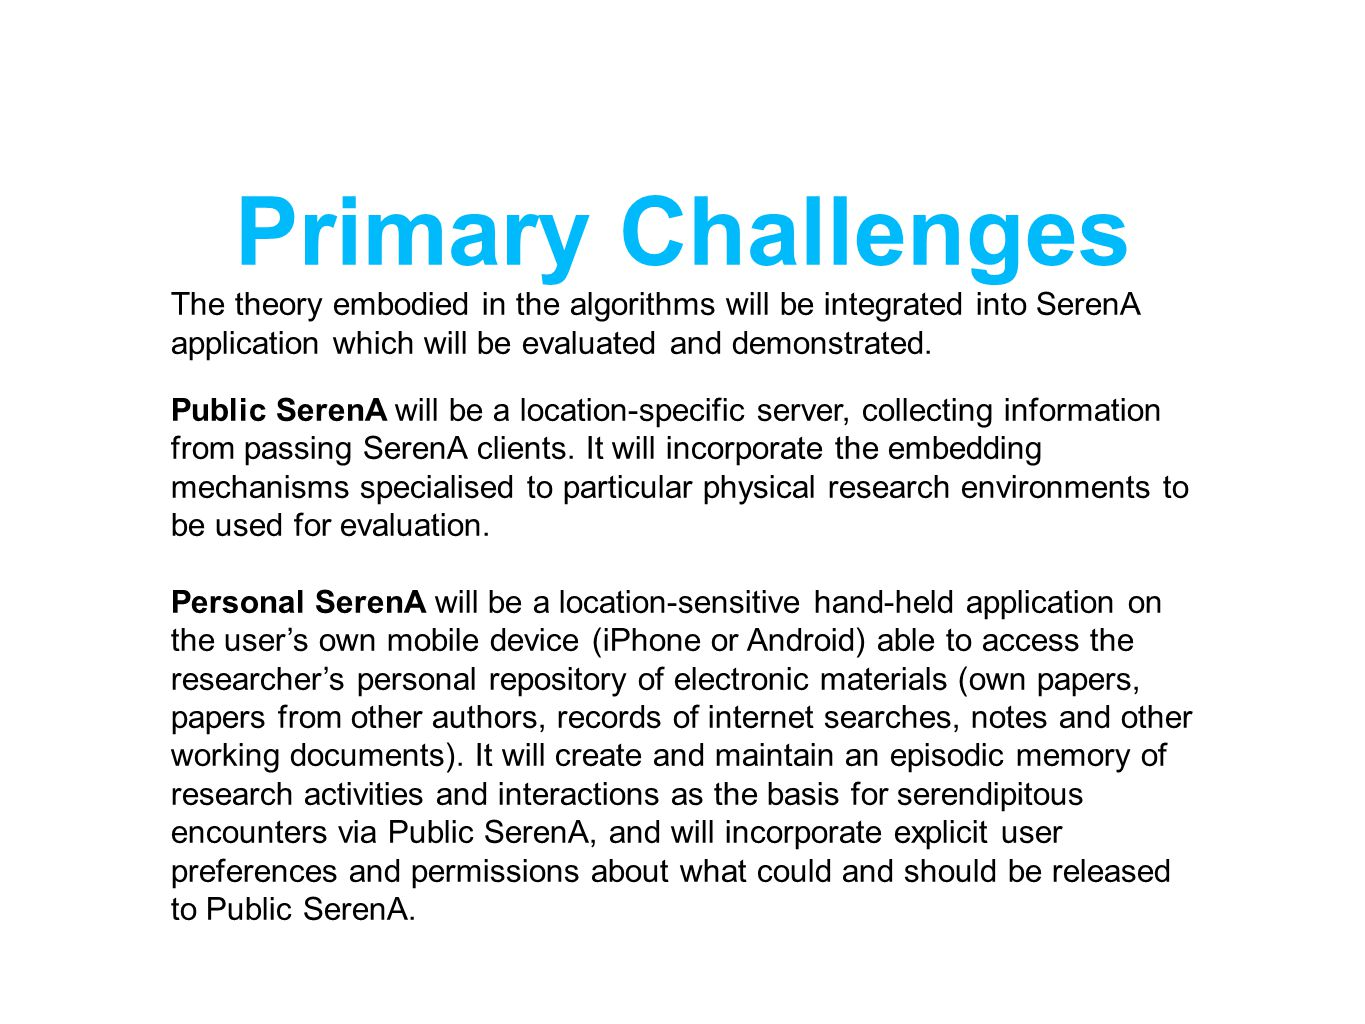 Primary Challenges The theory embodied in the algorithms will be integrated into SerenA application which will be evaluated and demonstrated.